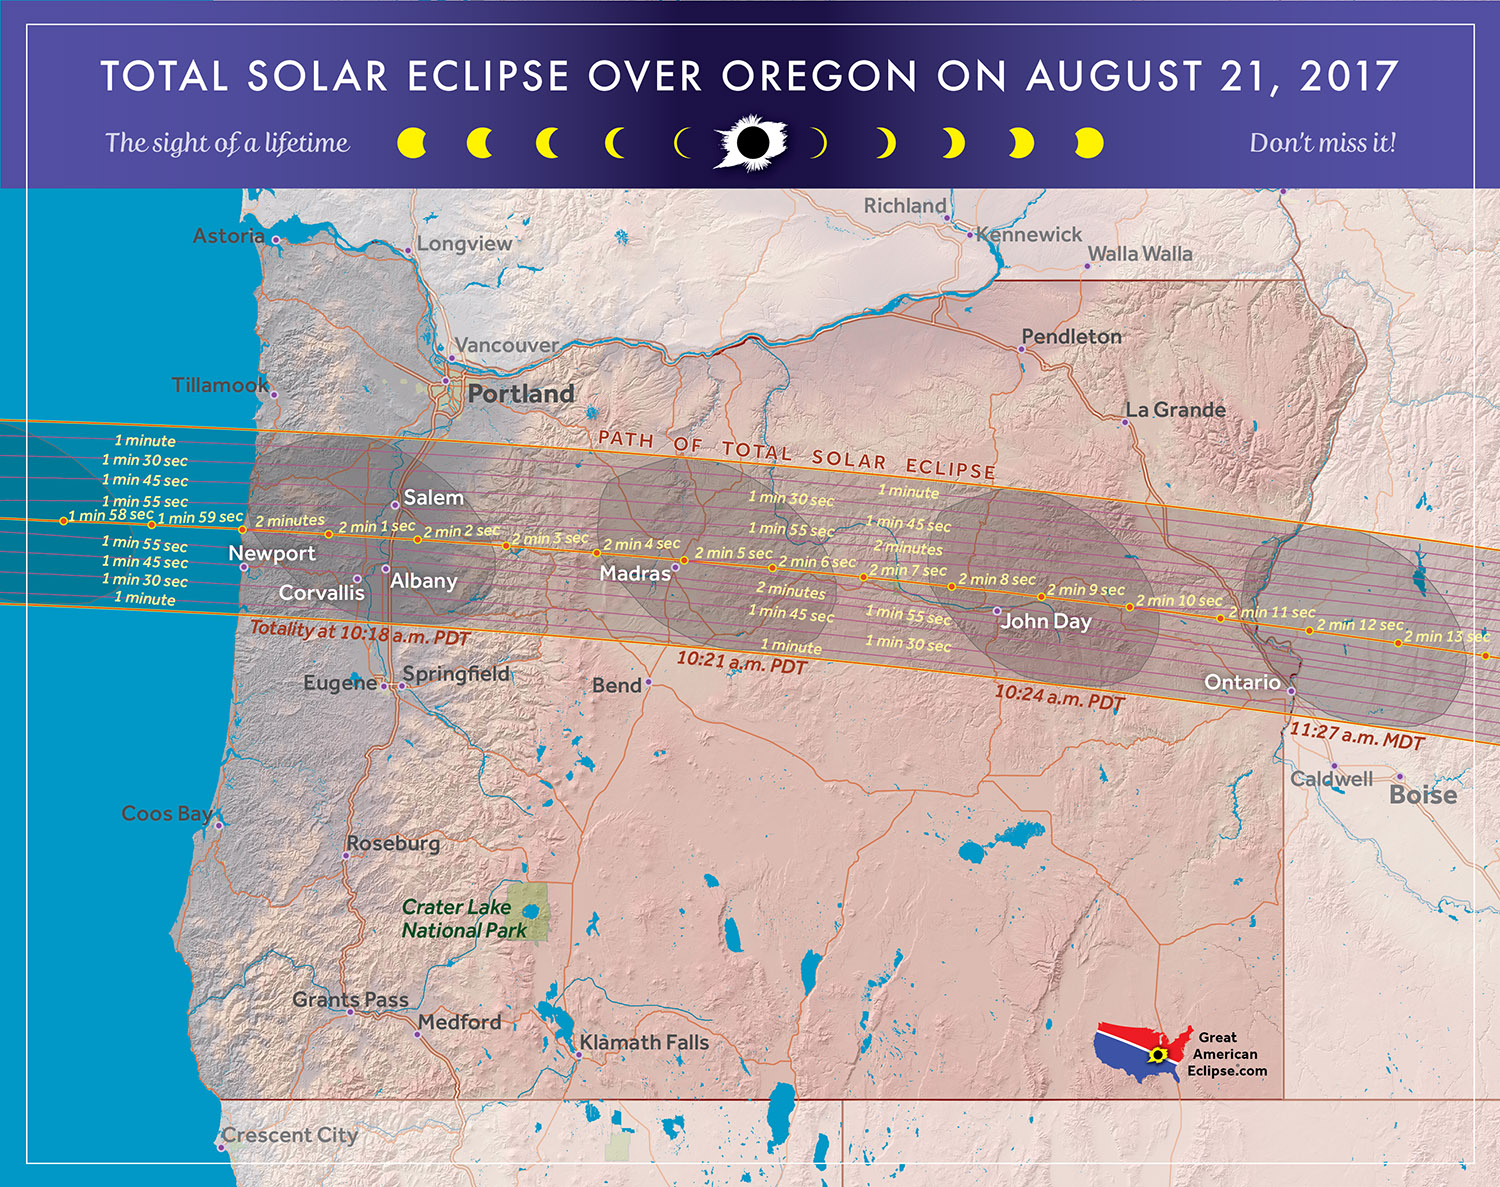 2017 Total Solar Eclipse in Oregon Map courtesy of Michael Zeiler GreatAmericanEclipse com